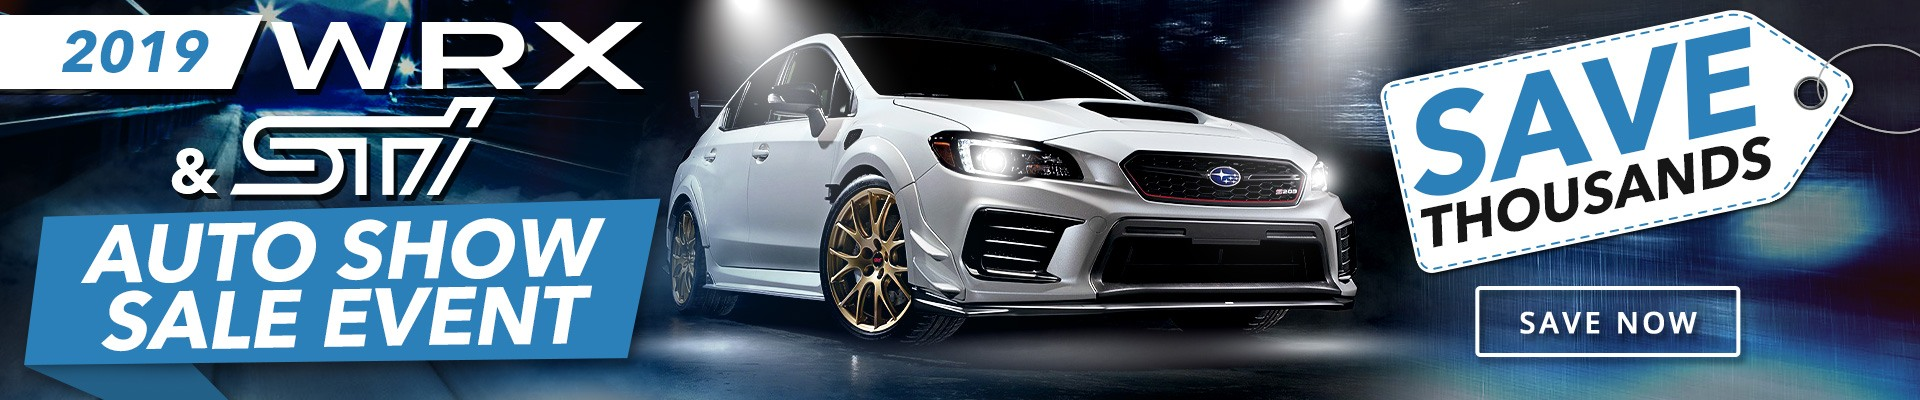 Out Limited Time Offer | WRX & STI Models in Toronto